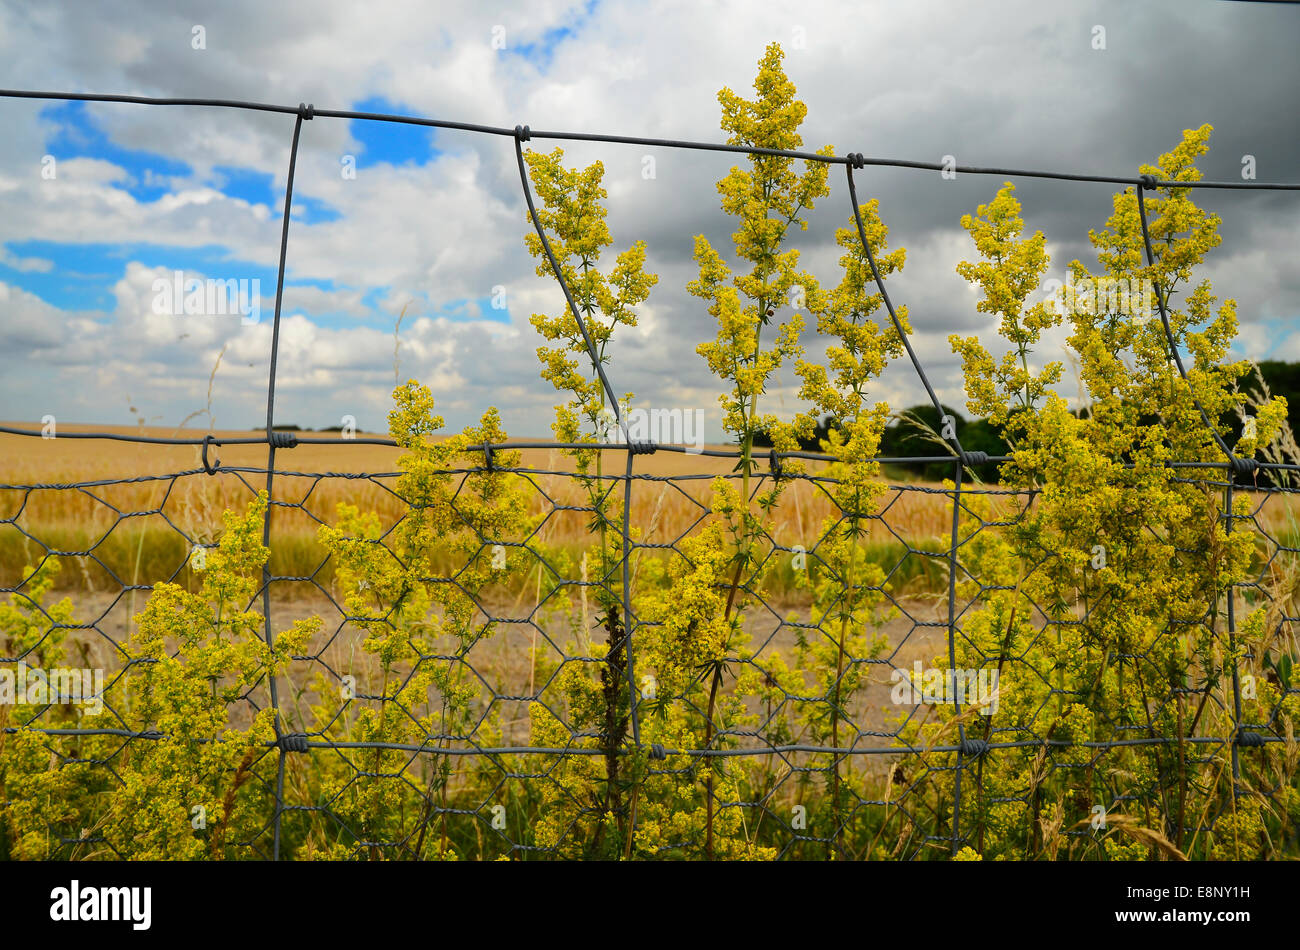 Wire fence in rural landscape with wildflowers - Stock Image